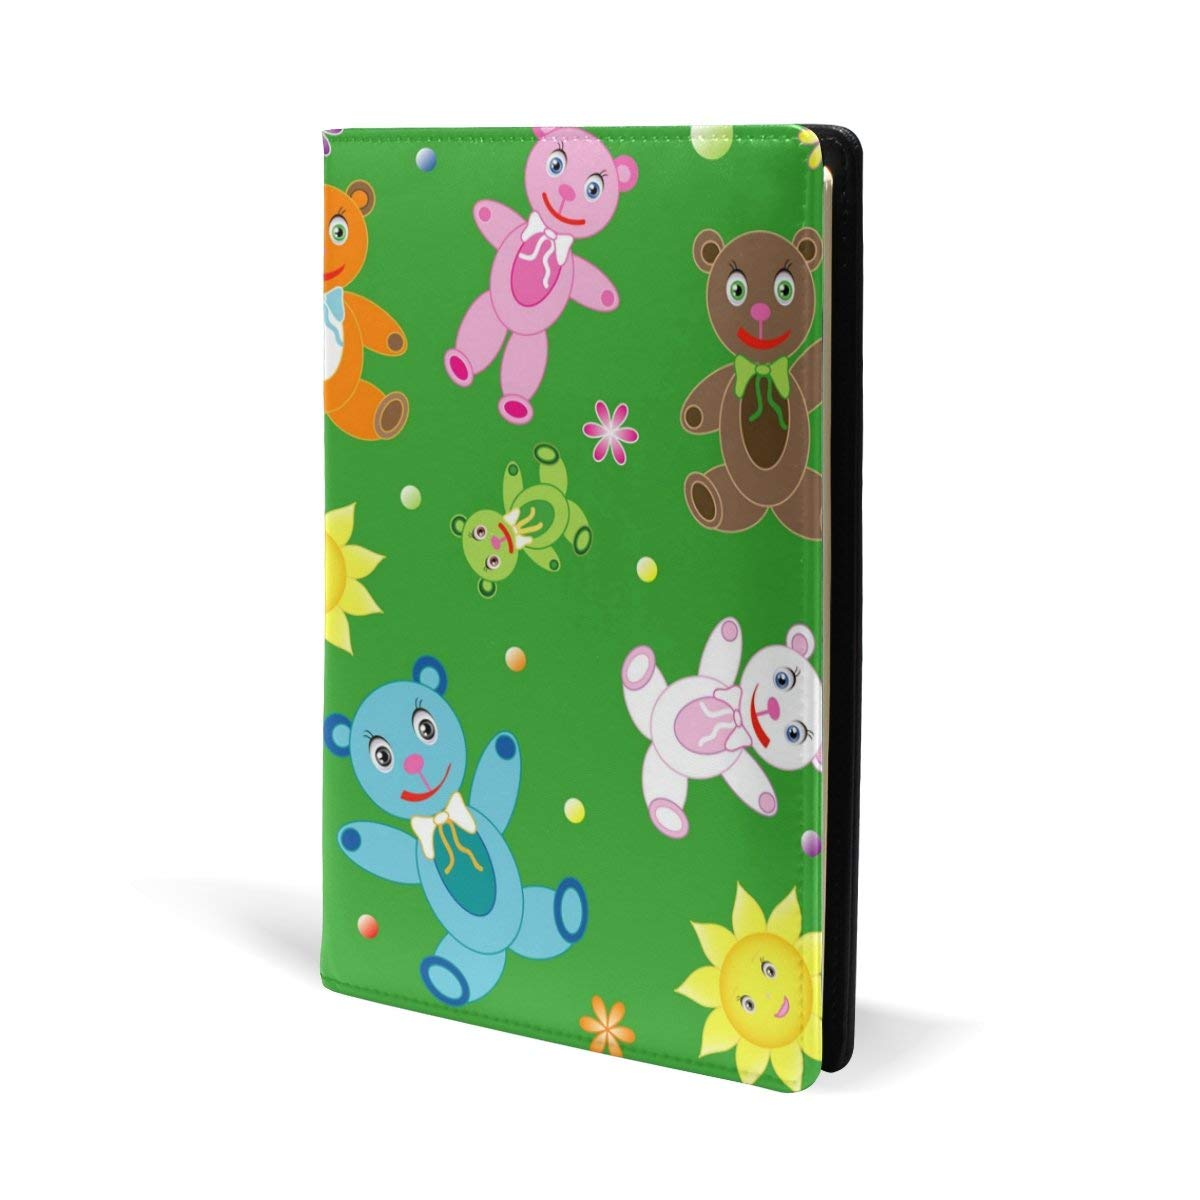 Aideess Childish Teddy Bears Stretchable Book Cover-Fits Most Hardcover Textbooks up to 8.7x5.8 in Adhesive Free, Leather Fabric School Book Protector, Easy to Put On Jacket